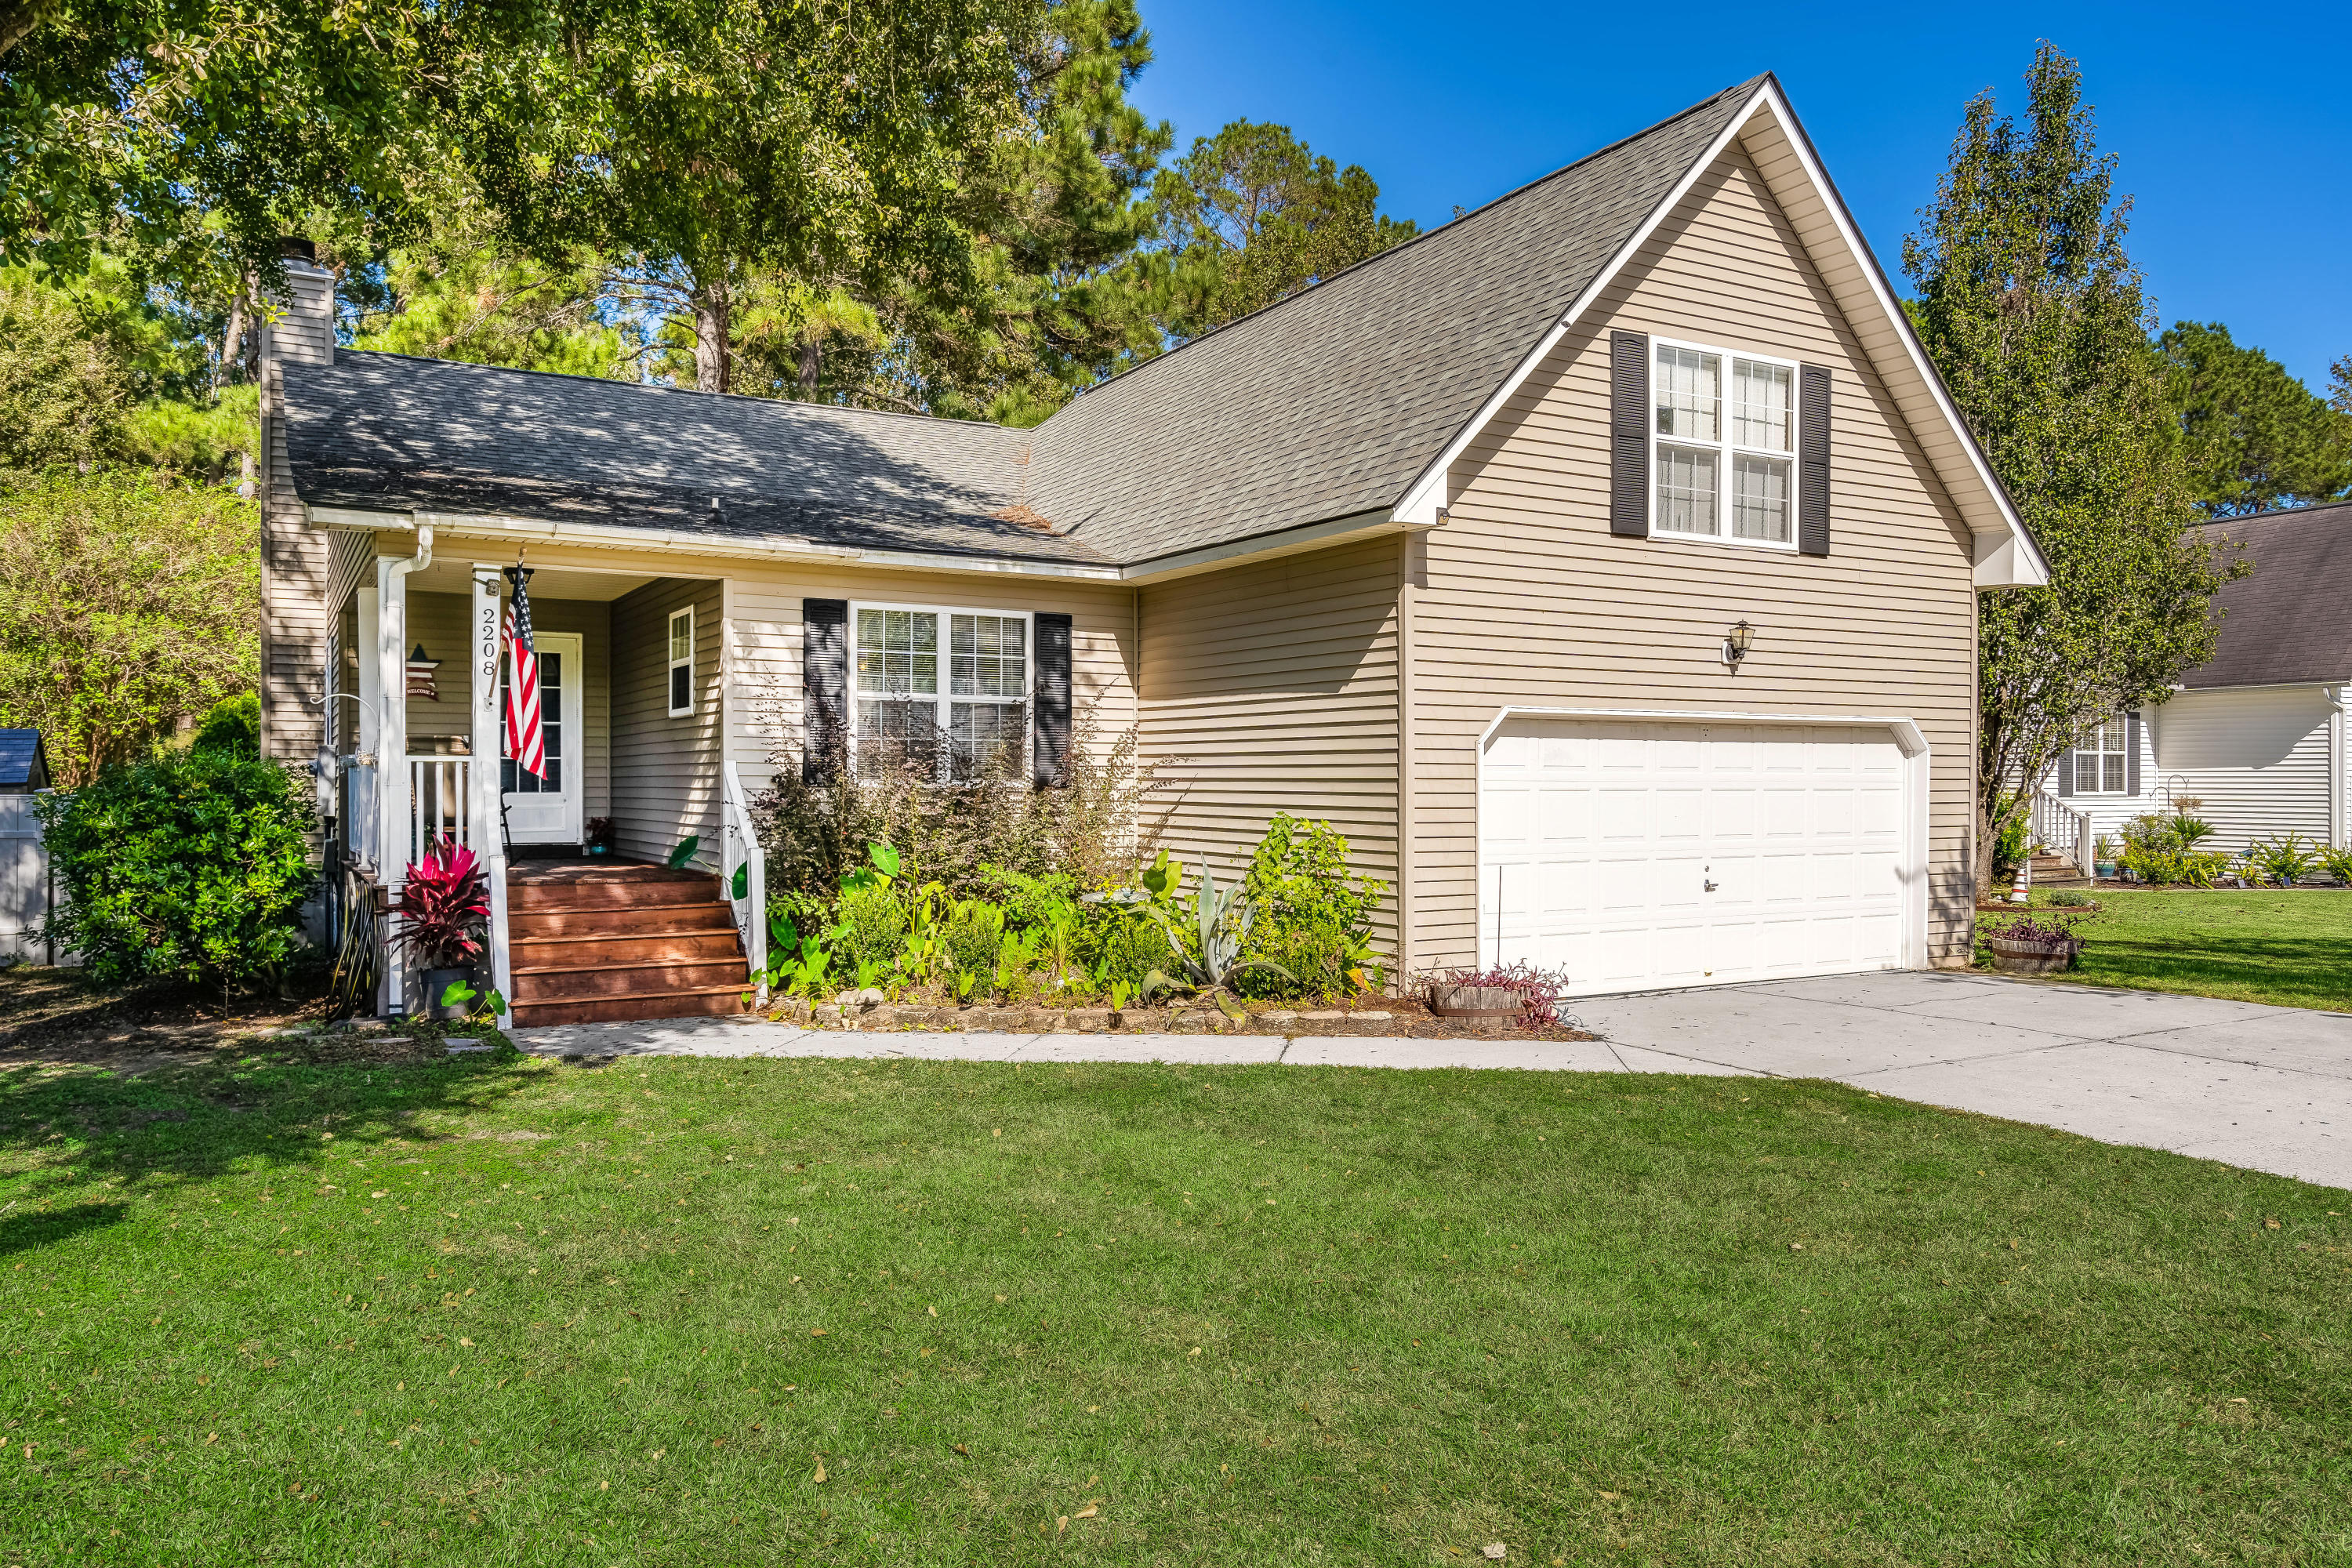 2208 Sawmill Trace Lane, North Charleston, 29420, 4 Bedrooms Bedrooms, ,2 BathroomsBathrooms,Single Family Detached,For Sale,Sawmill Trace,20028892